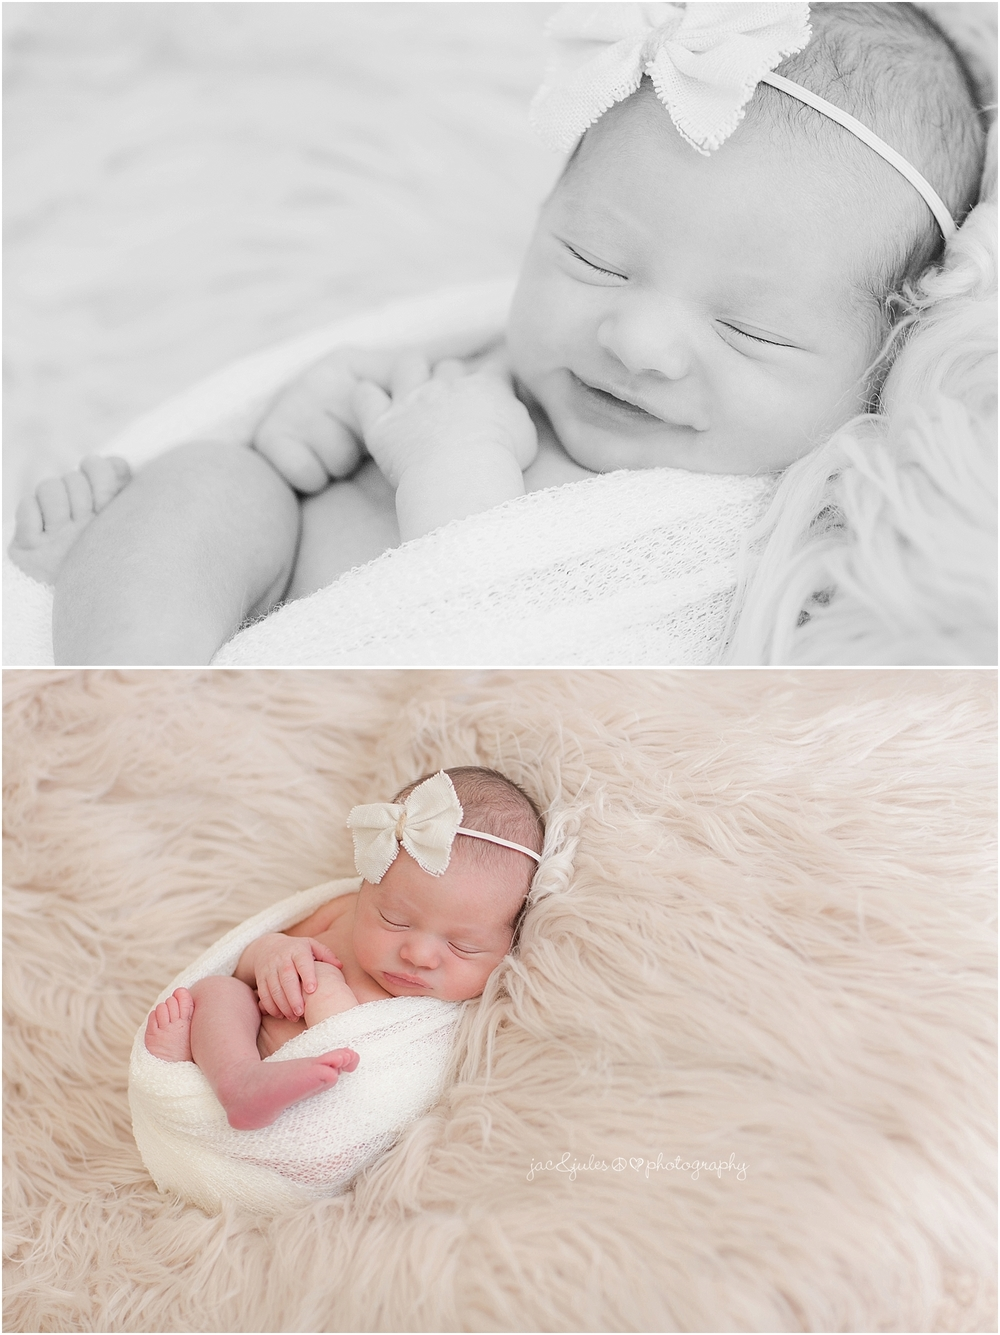 jacnjules photographs newborn baby girl in their home in nnj